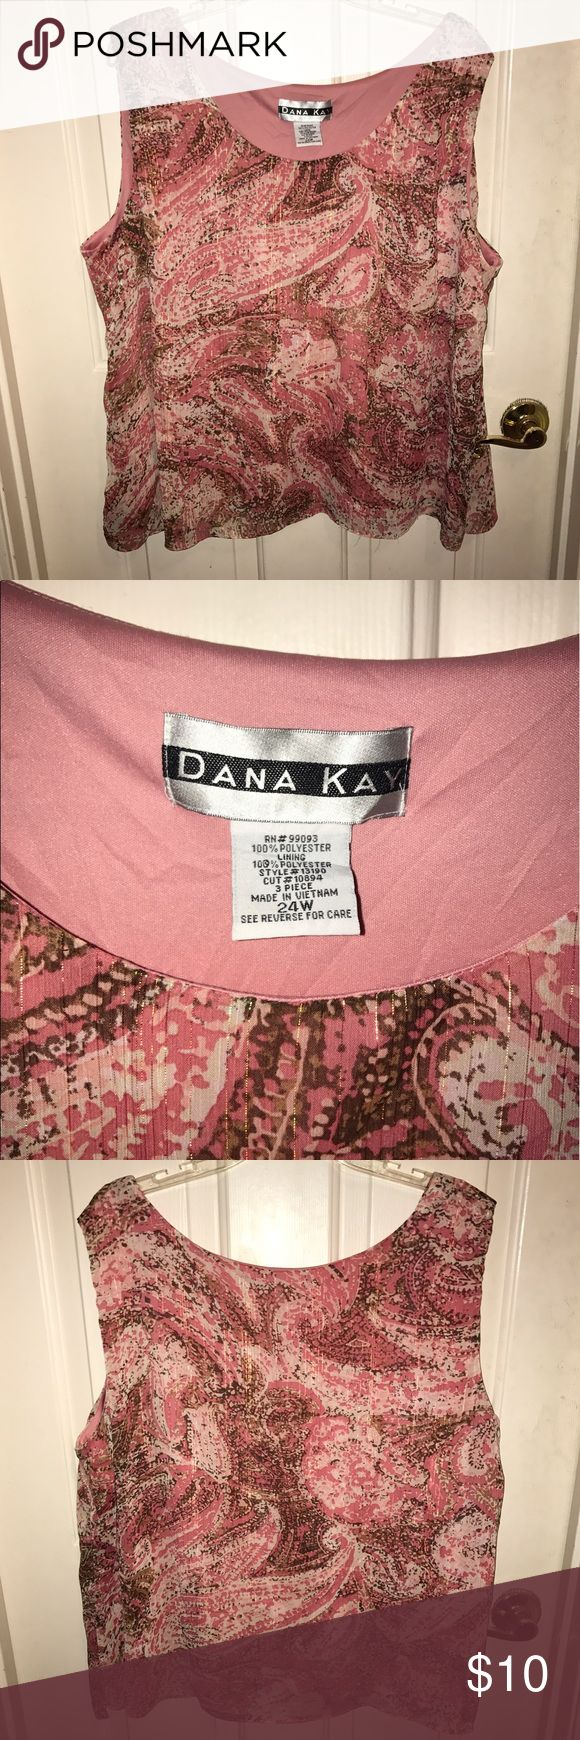 💙DANA KAY💙Sleeveless Pink/ Sparkling Blouse 💙DANA KAY💙Pink/ Brown/ Ivory Sleeveless Blouse. Gold sparkle throughout the blouse. 100% polyester. Fully lined. Size - 24W. Dana Kay Tops Blouses